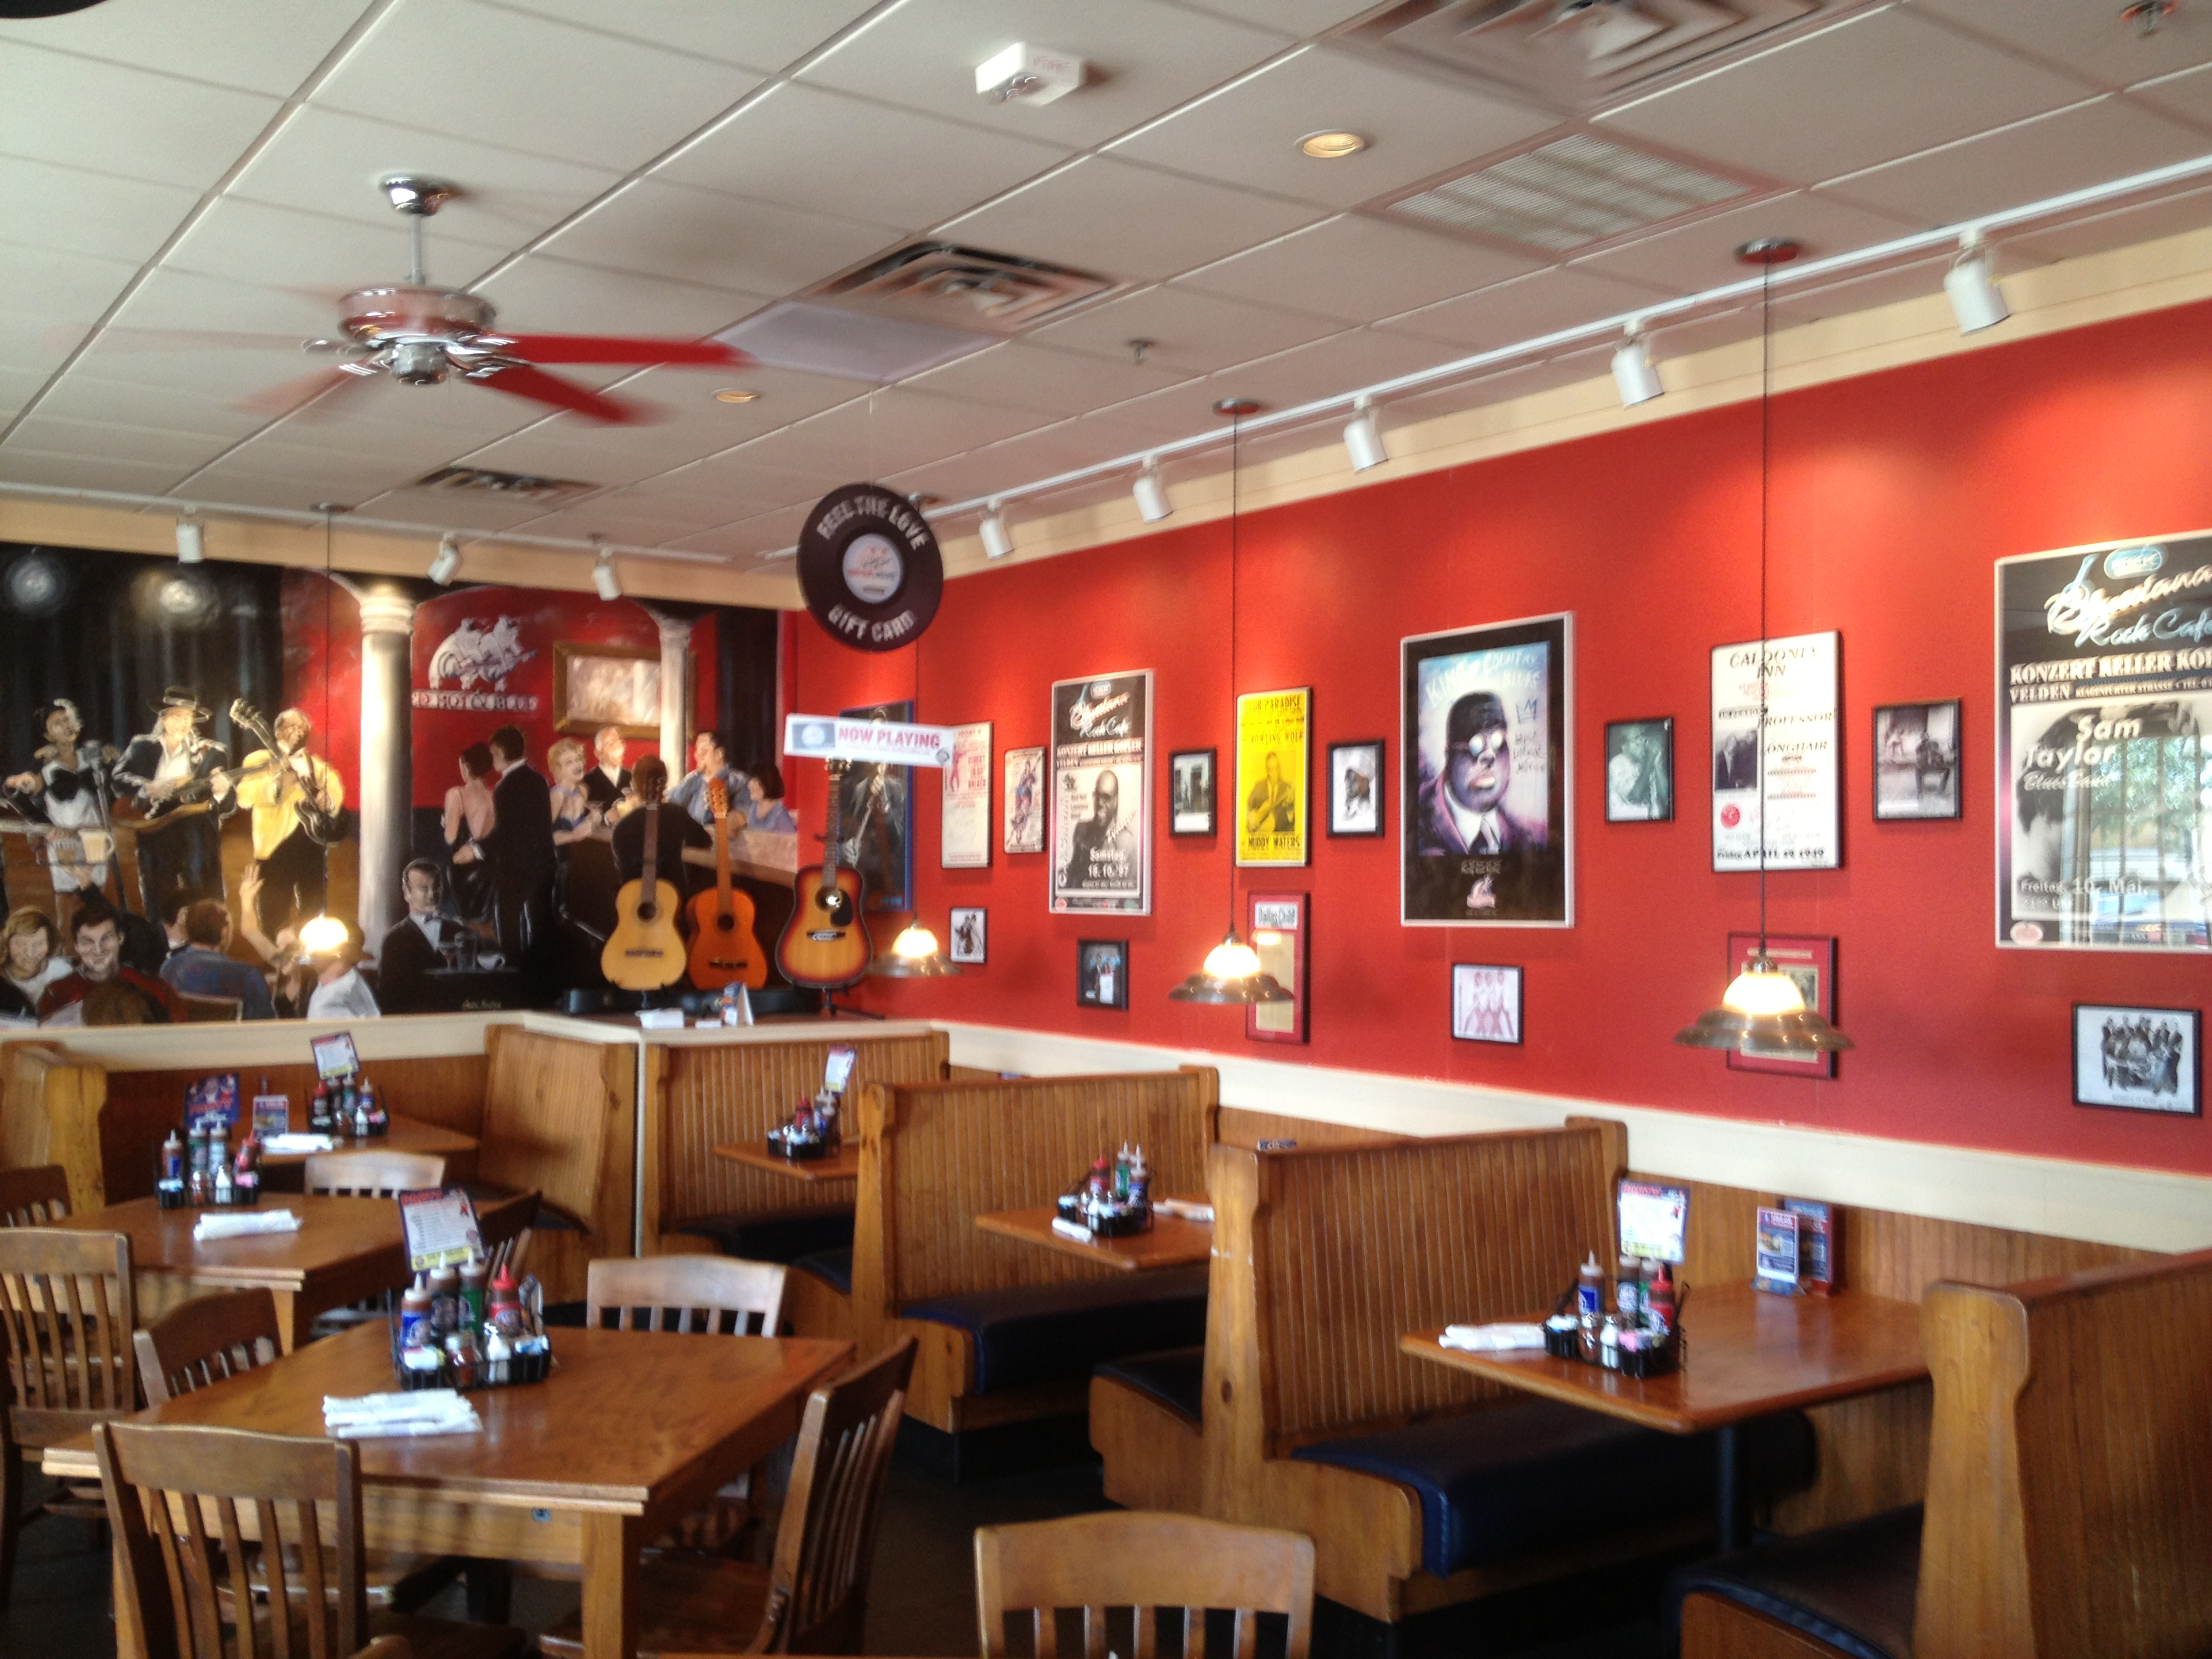 red hot blue bbq restaurant expands franchise opportunities